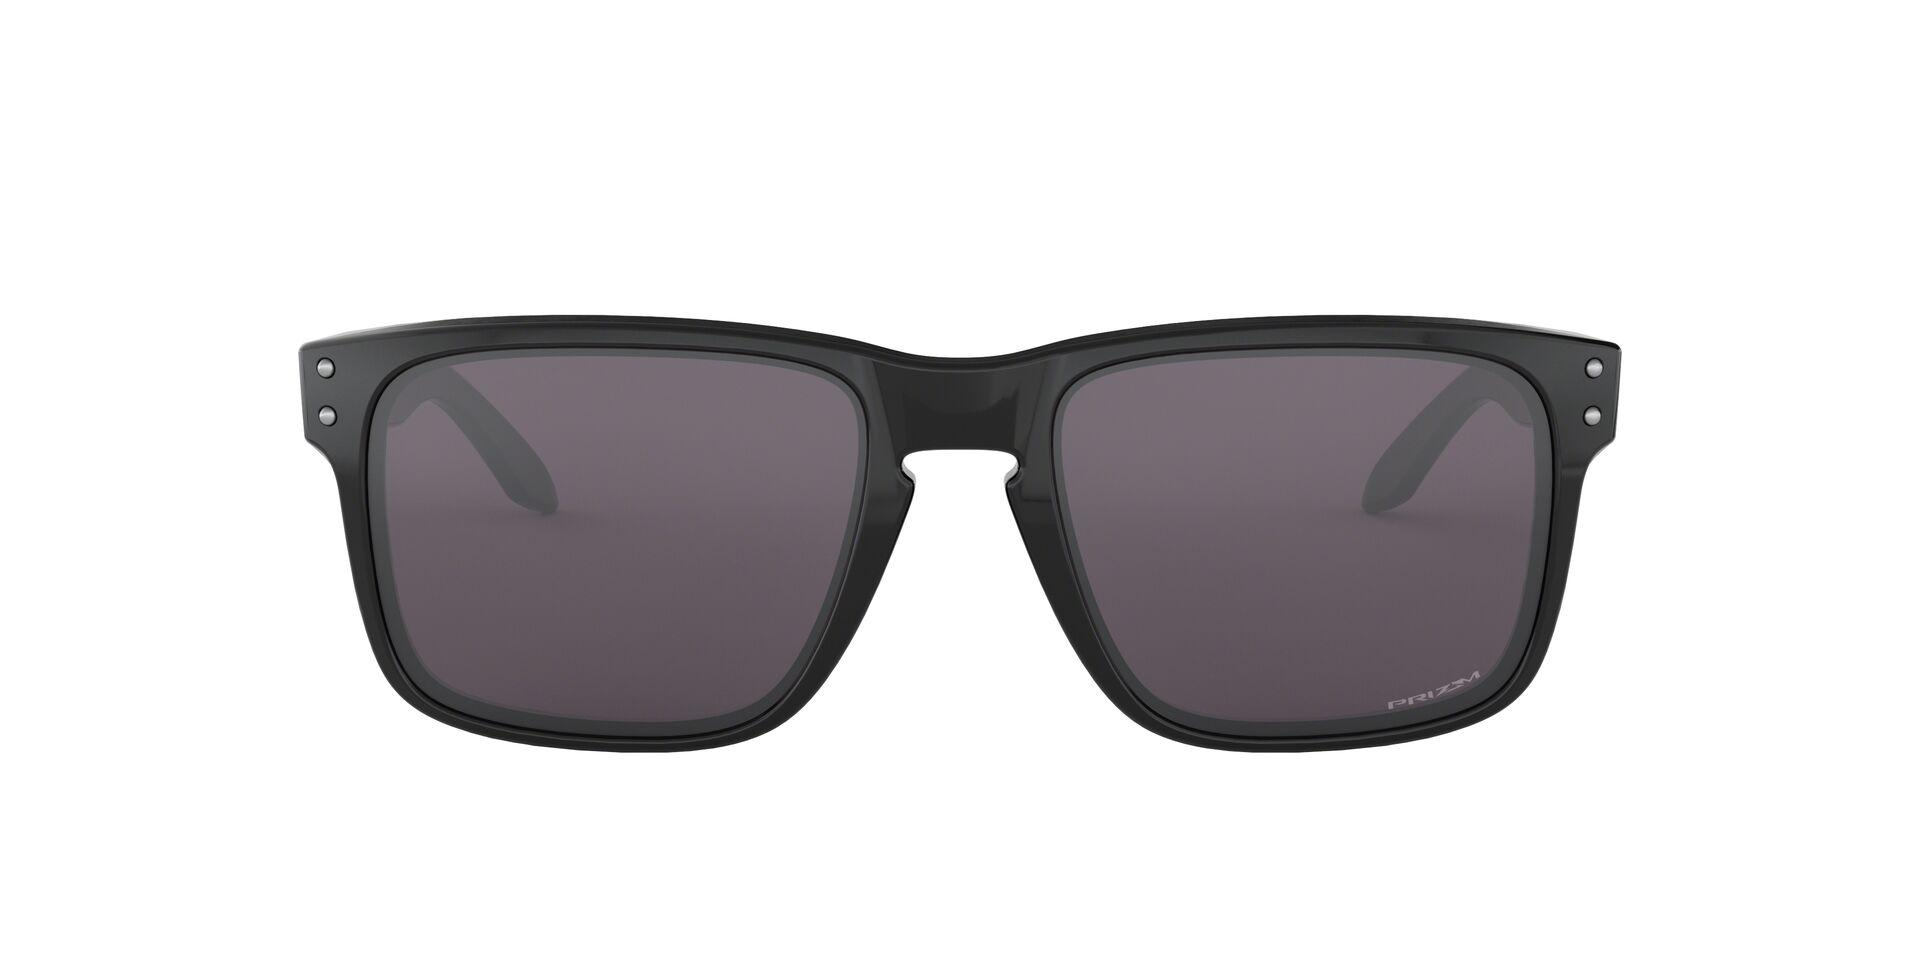 862a48cf1bb14 Oakley Philippines  Oakley price list - Oakley Shades   Sunglasses ...